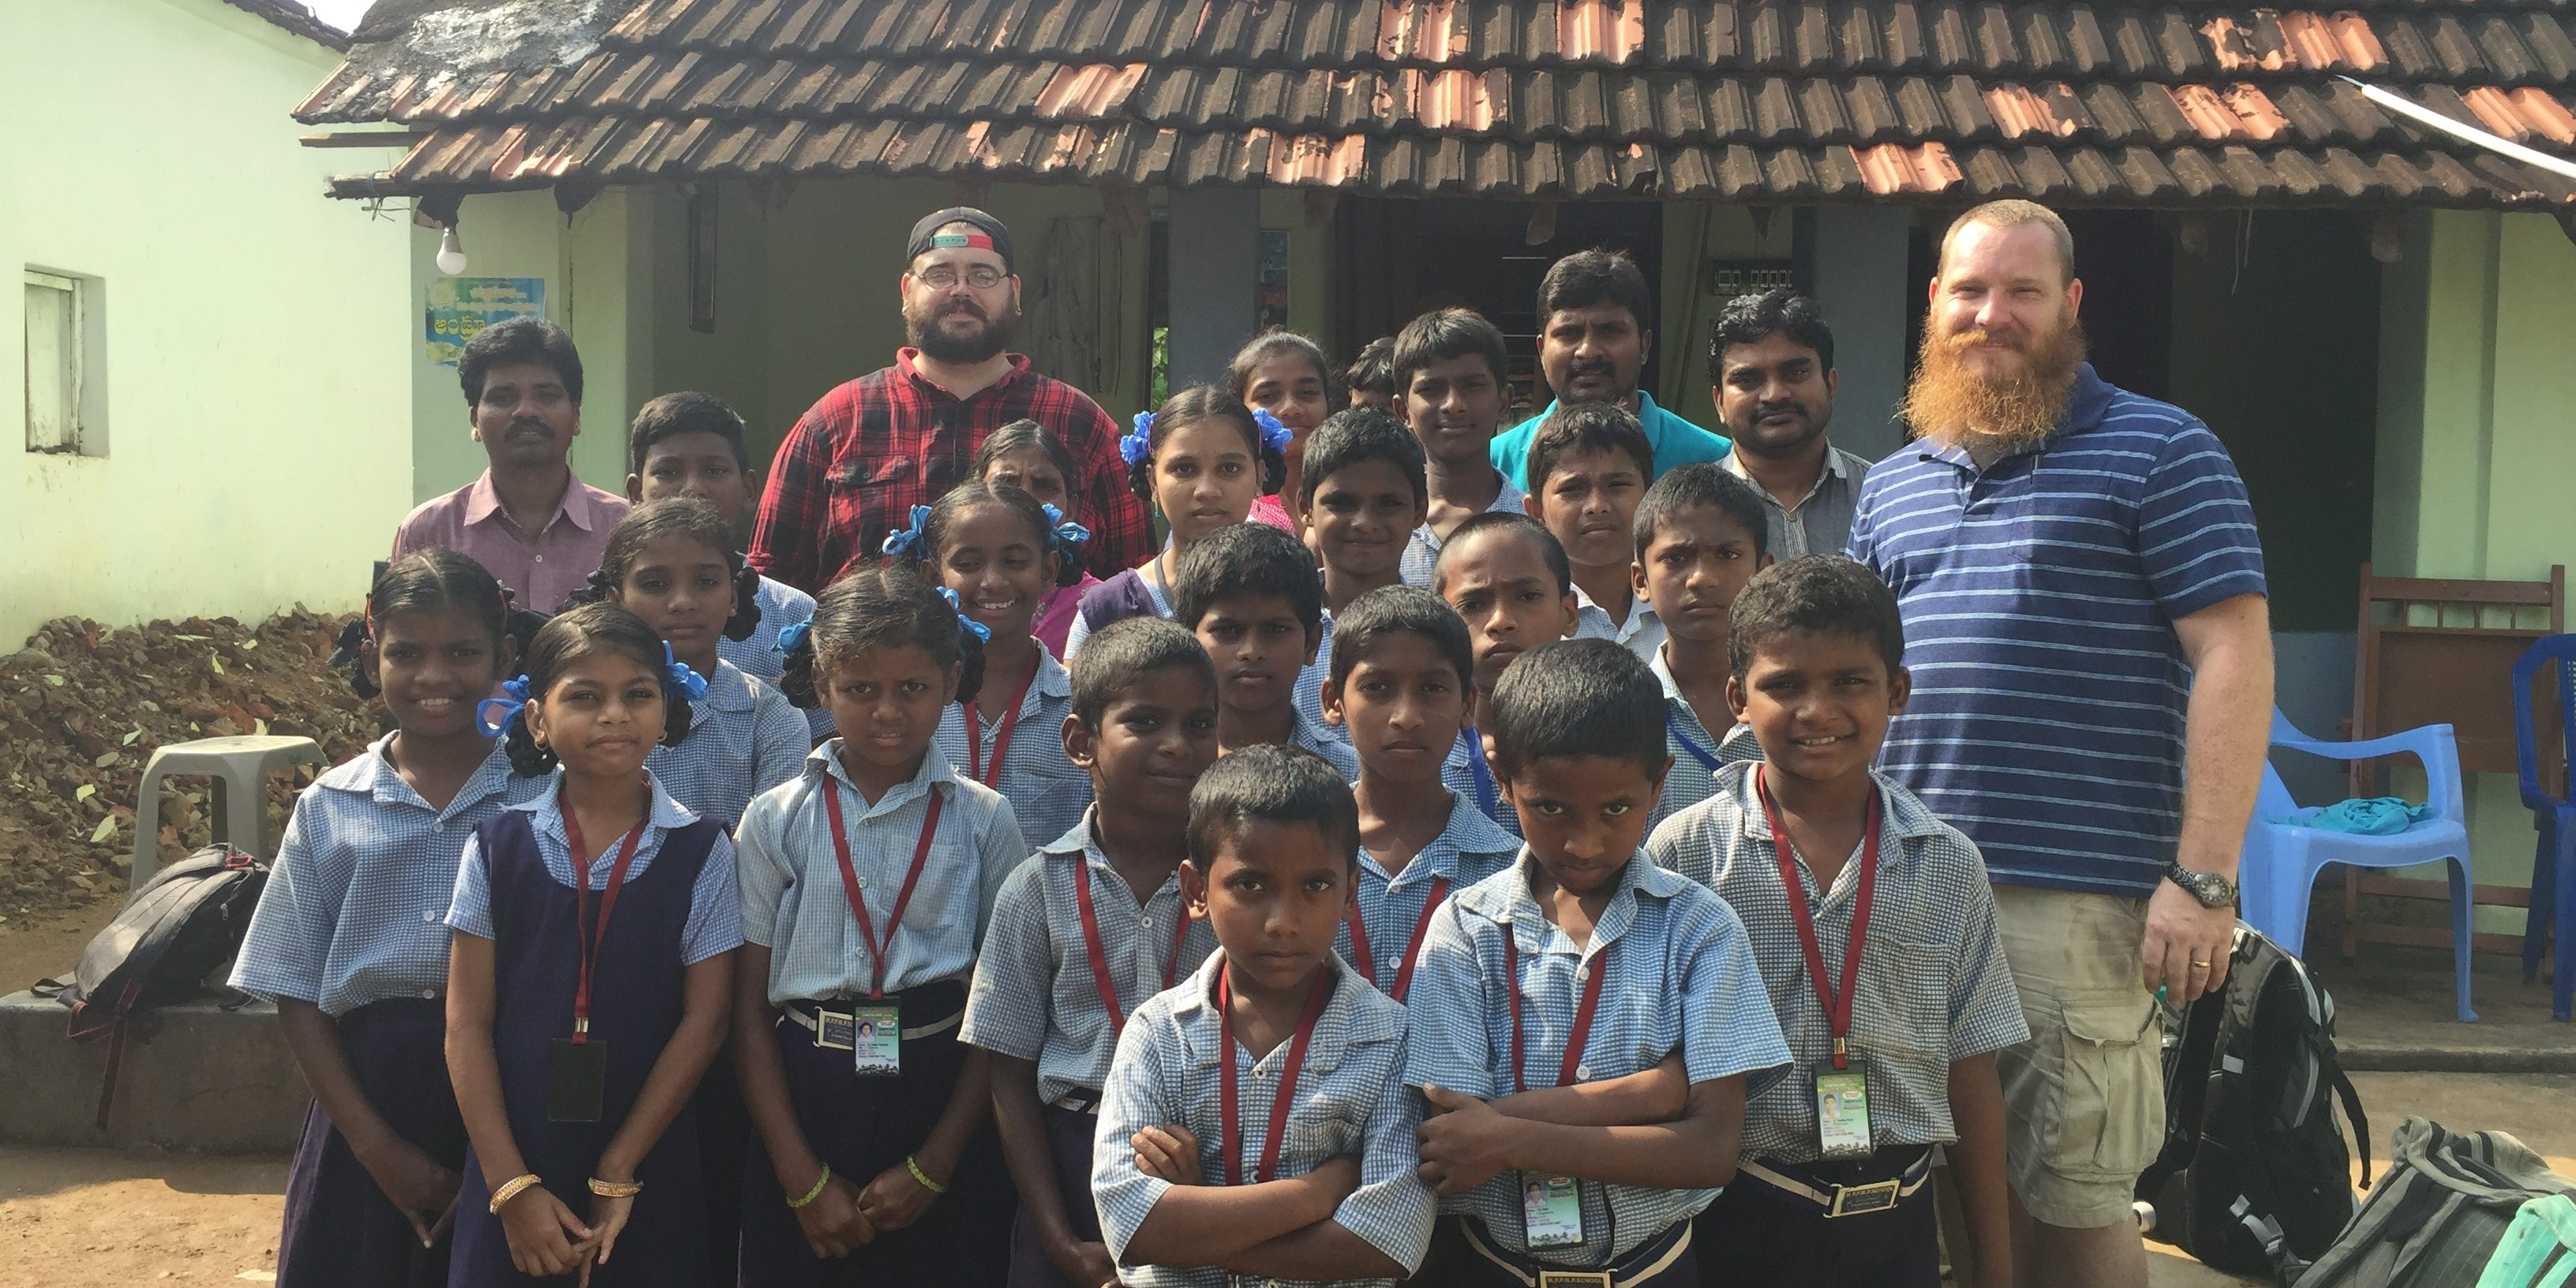 Zach and James with orphans India 2017